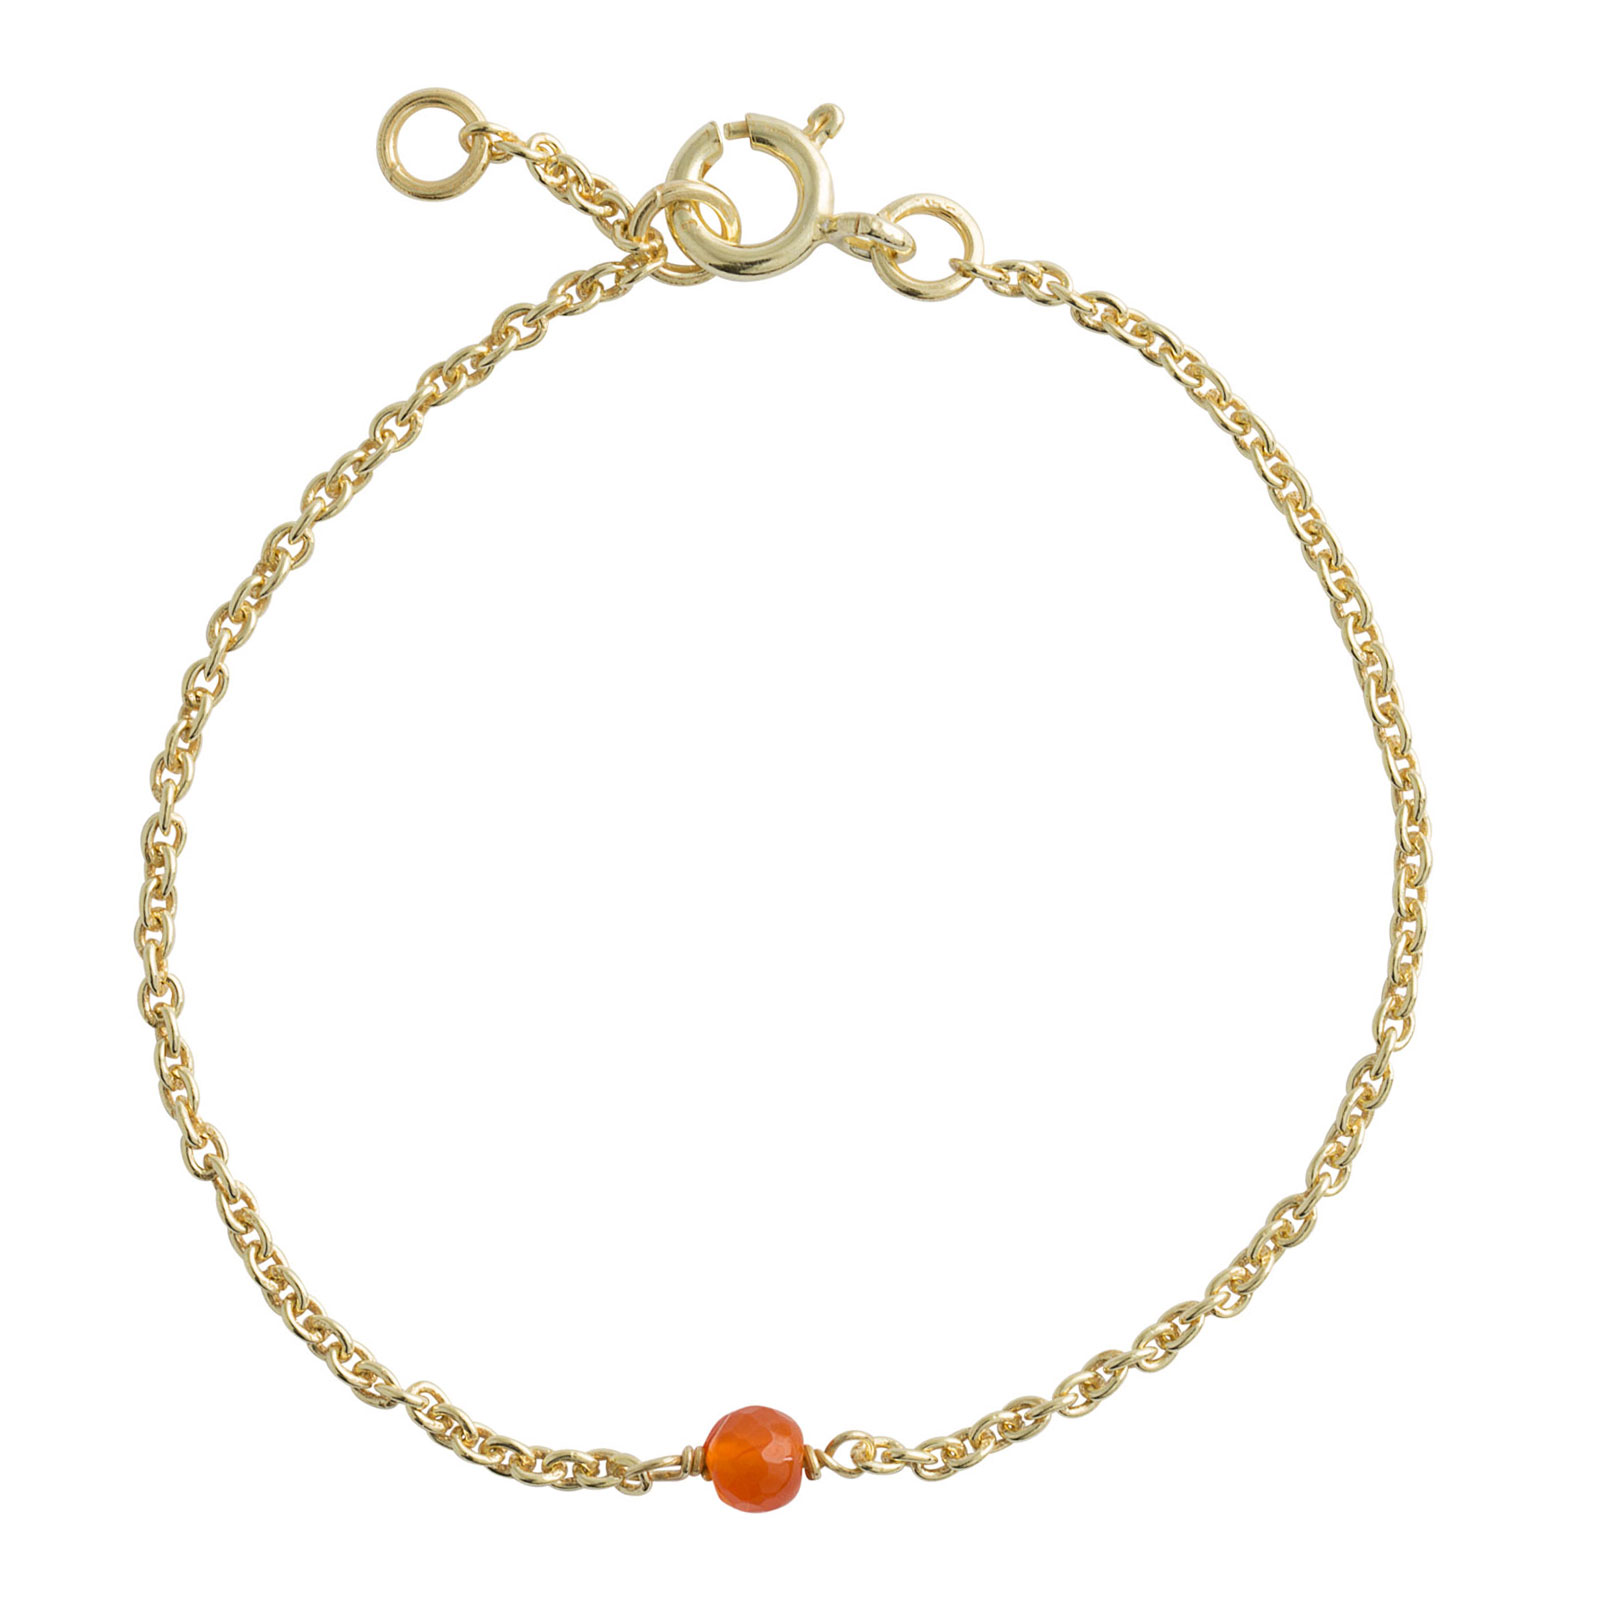 Image of   Lene Visholm Forgyldt Sølv Armbånd med Orange Calcedon